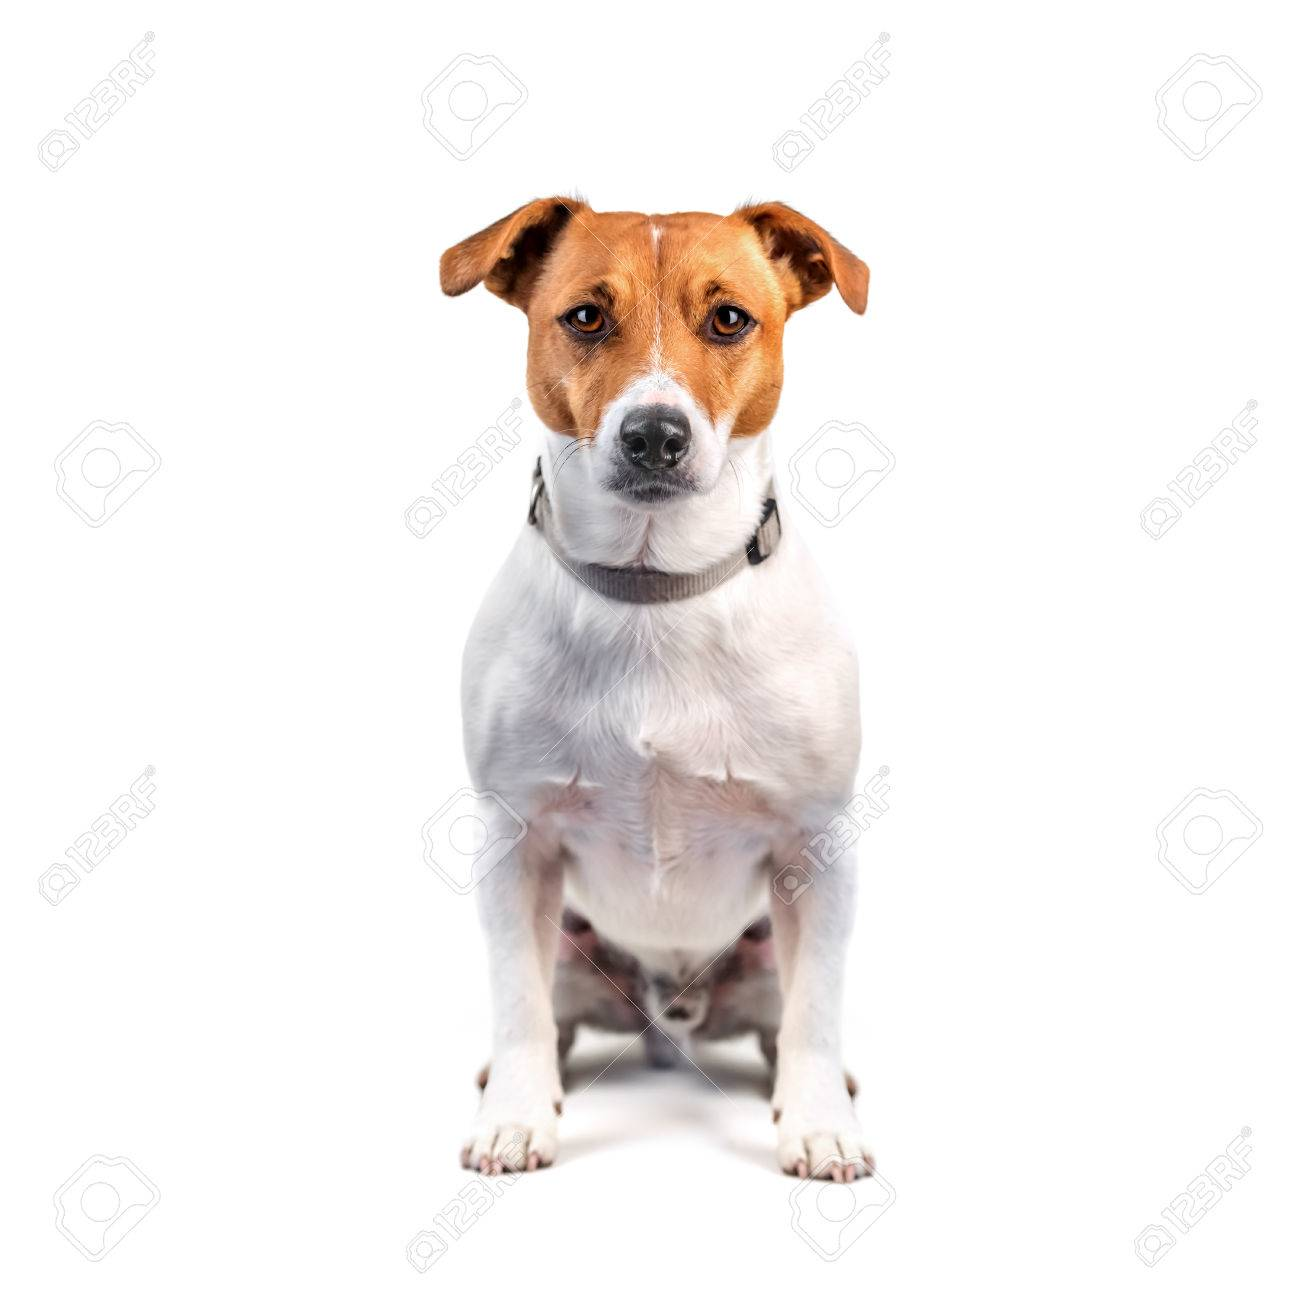 jack russel isolated on white - 32328578